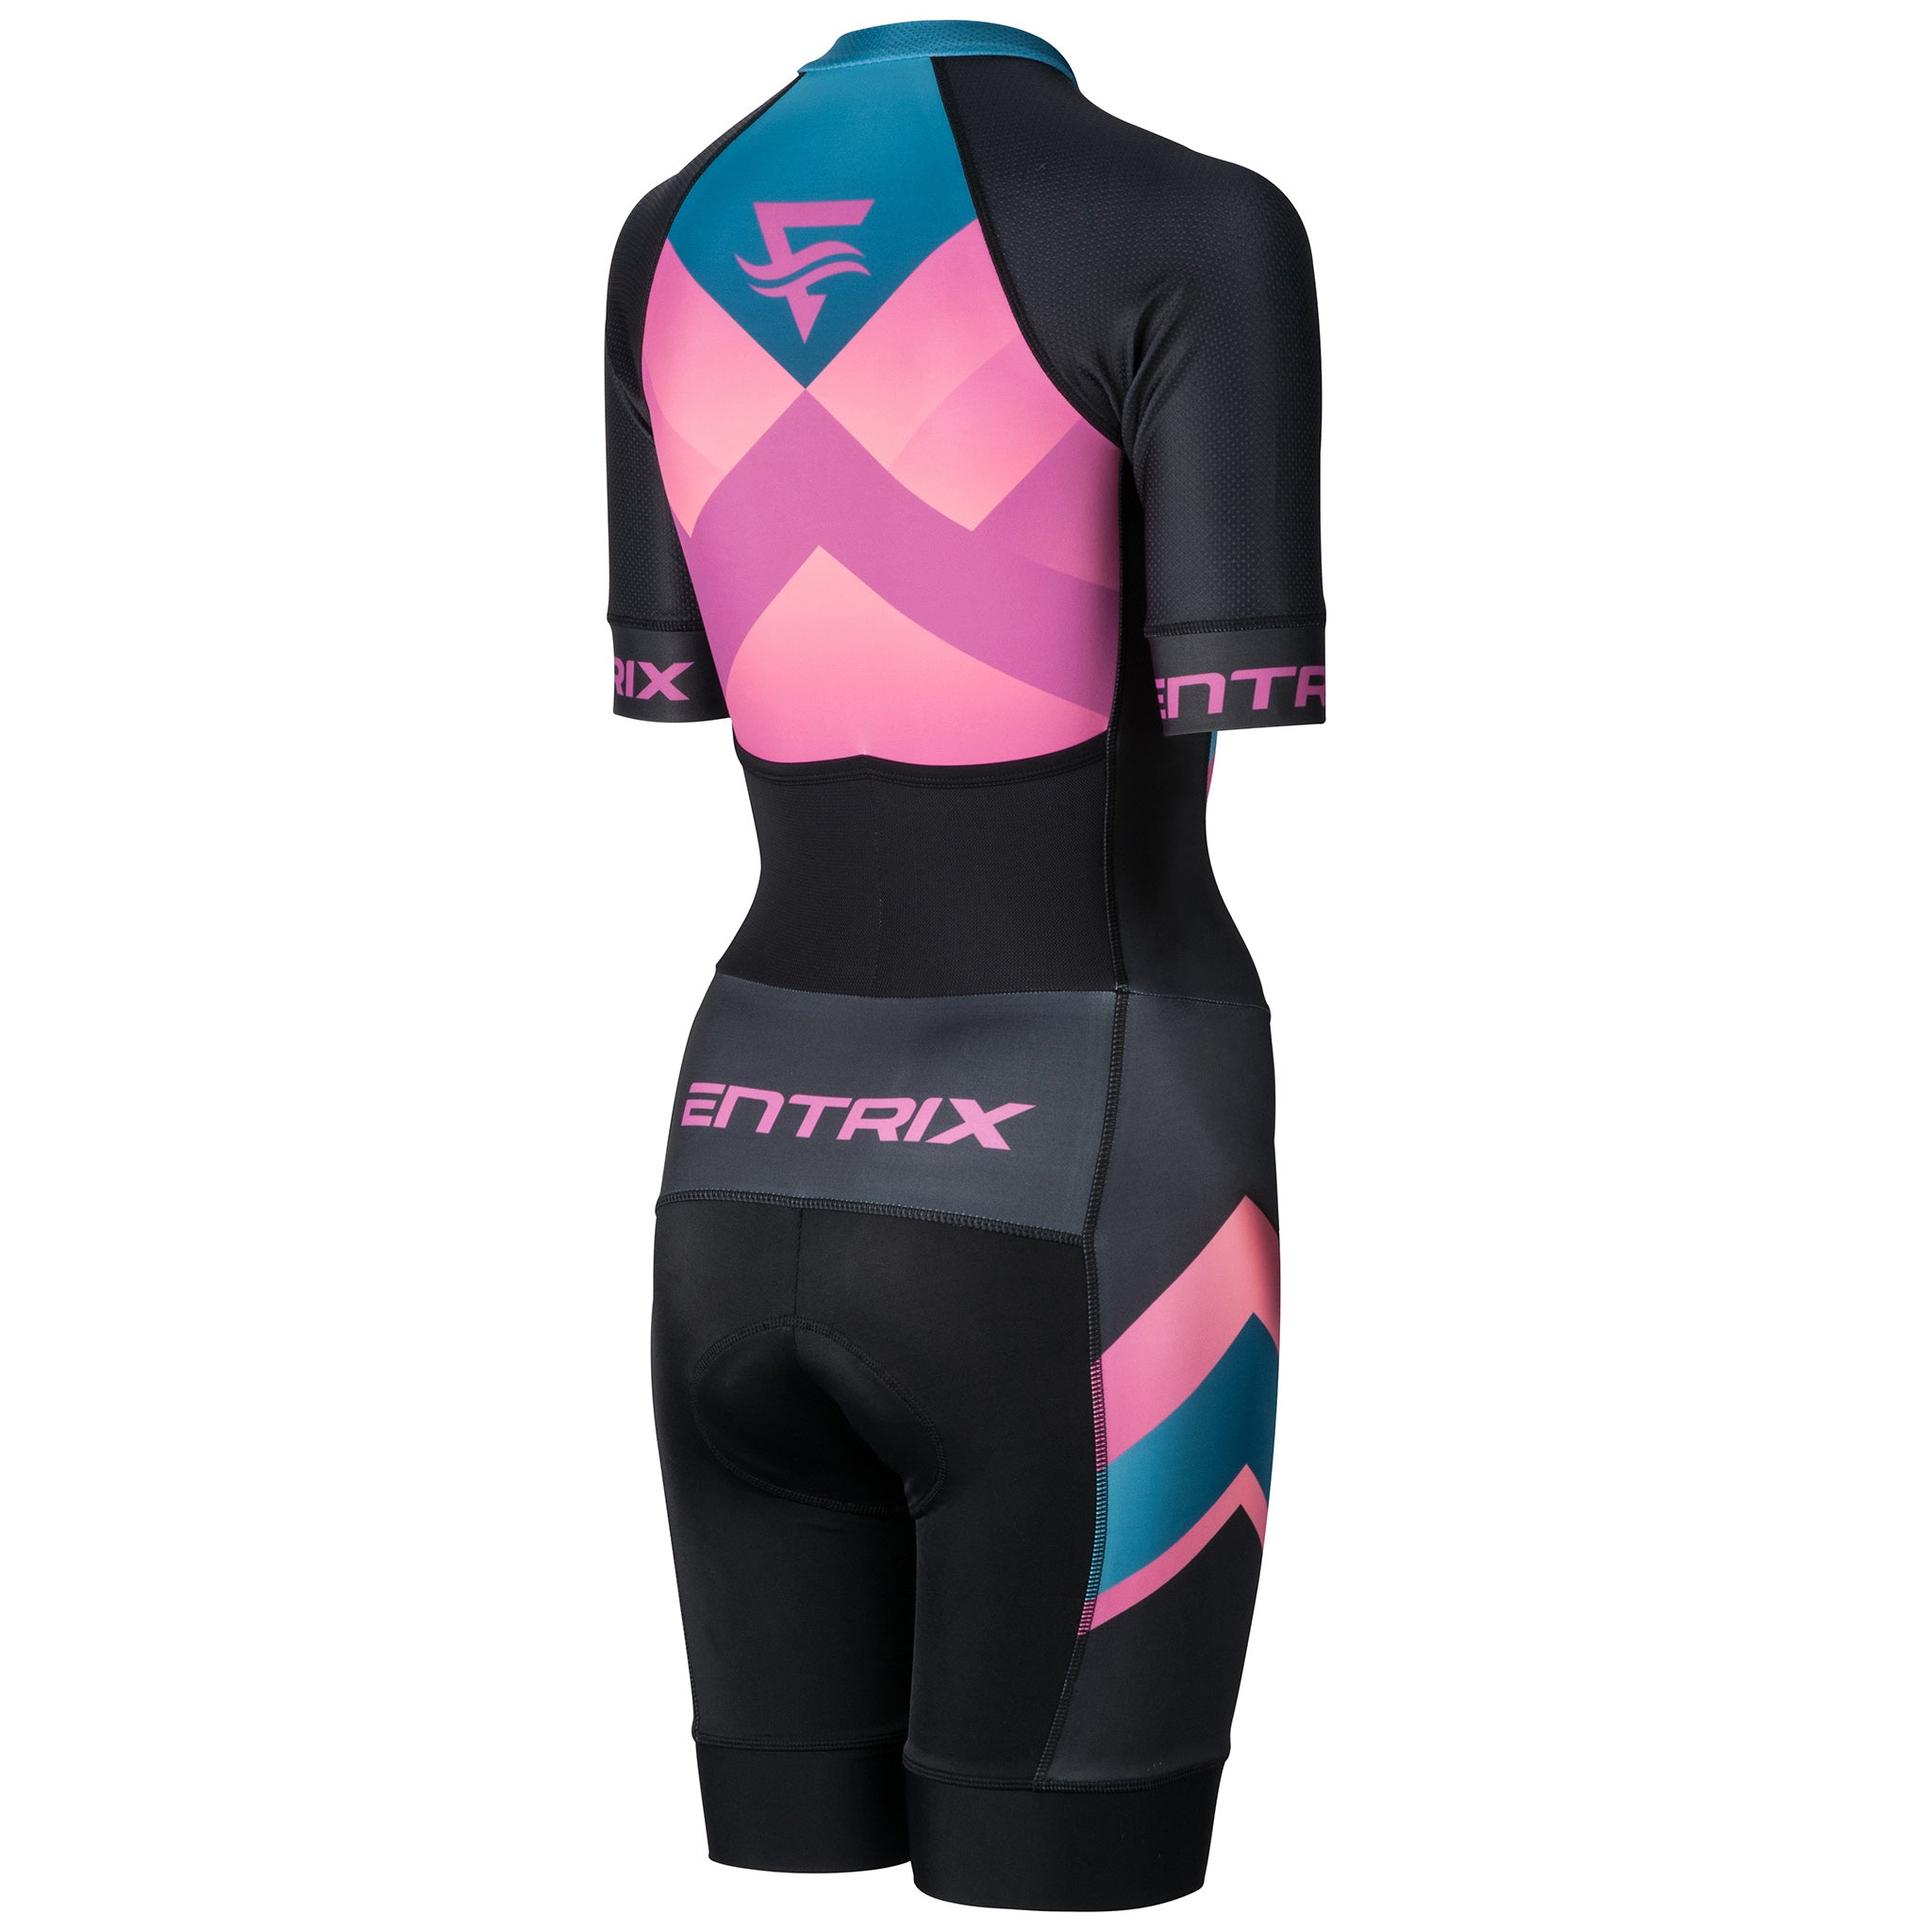 Momentum Evo Triathlon Suit Womens - Elbow Sleeve - ENTRIX